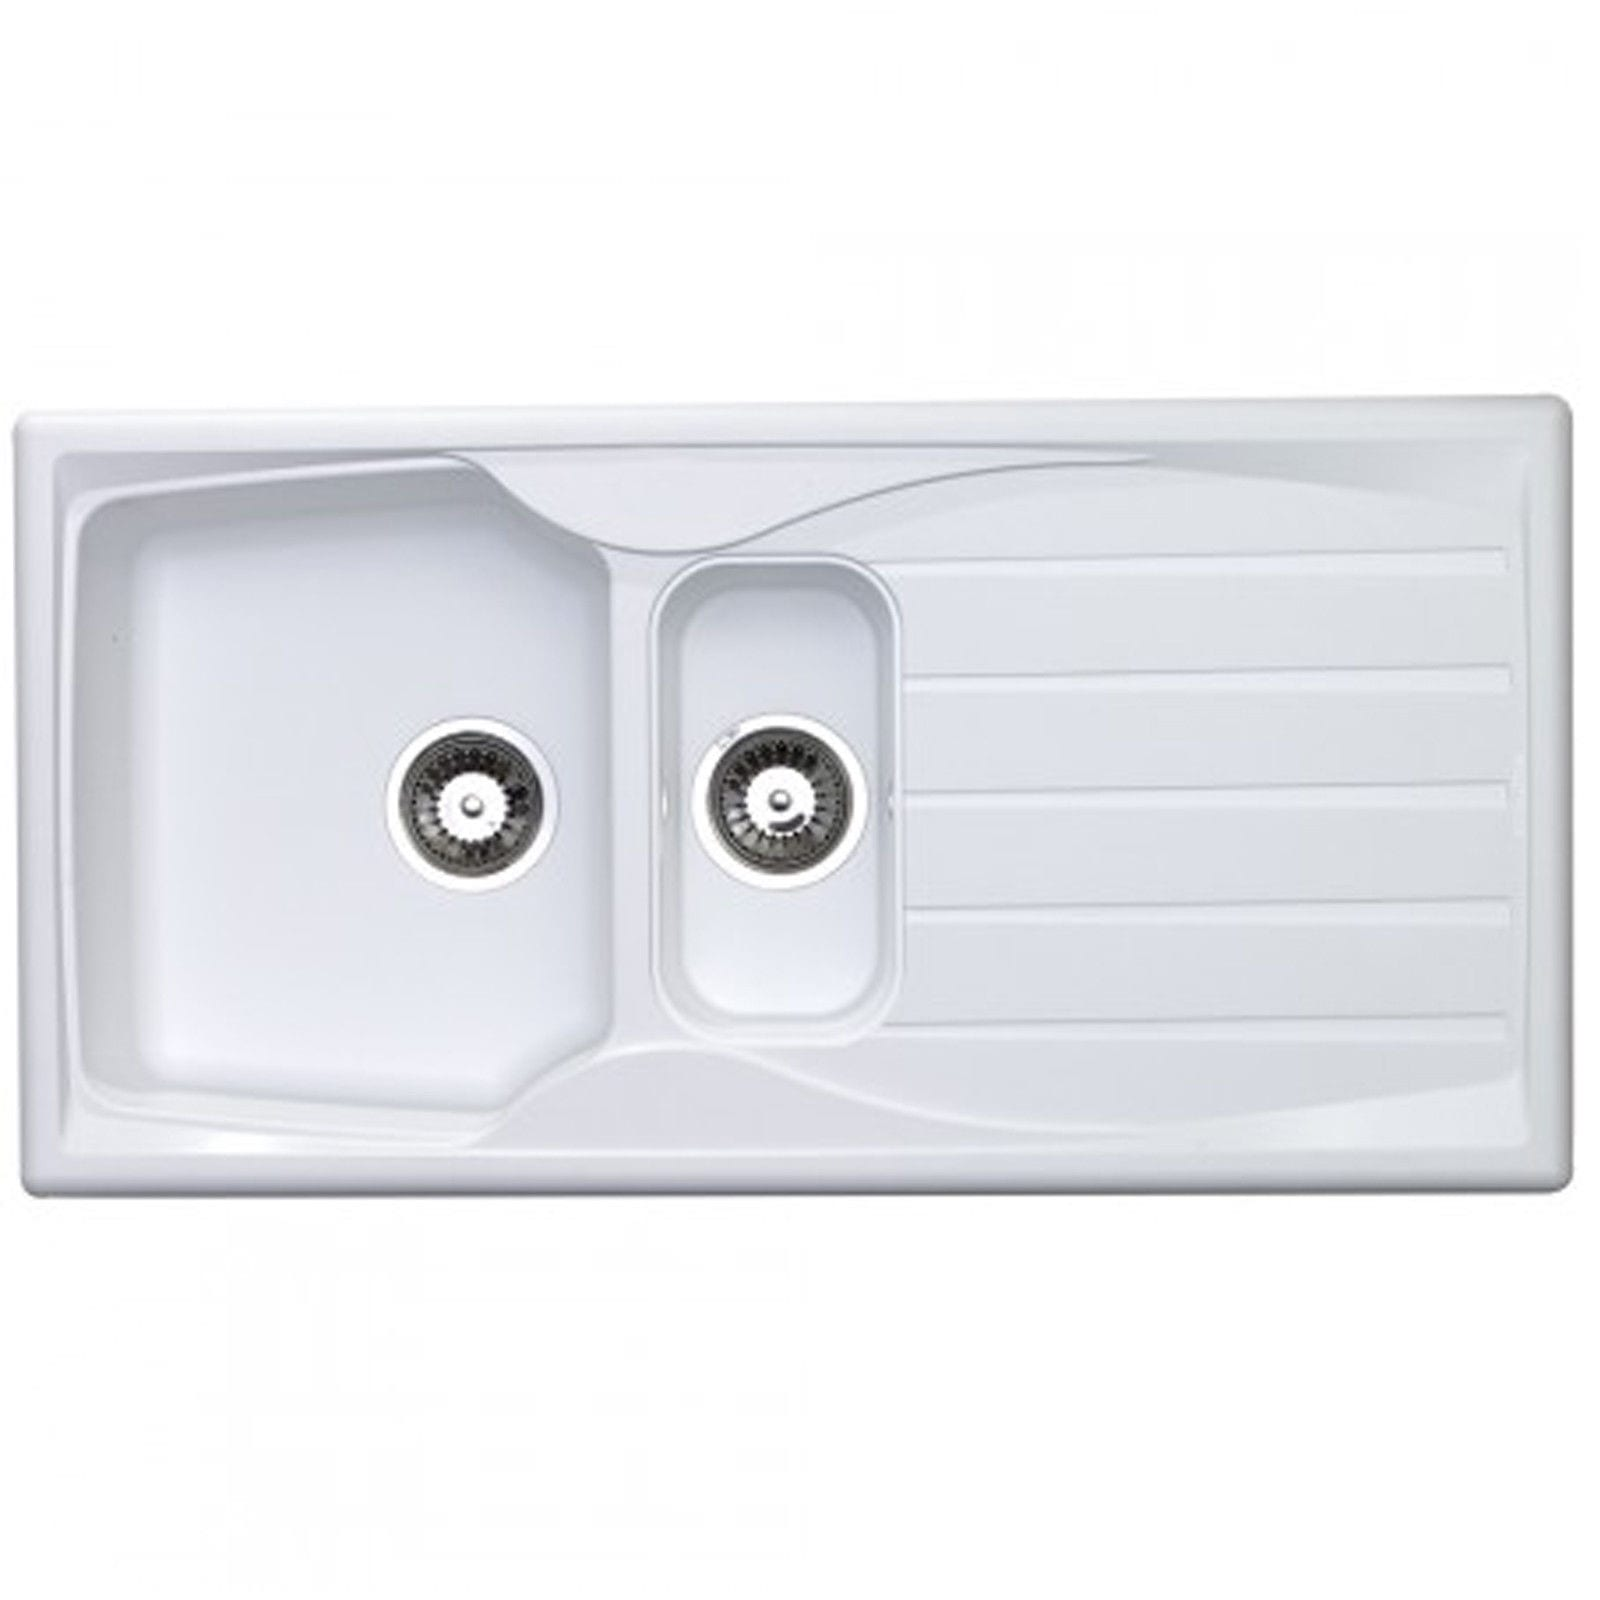 Astracast sierra 1 5 bowl teflite reversible white kitchen sink and waste kit at ship it appliances